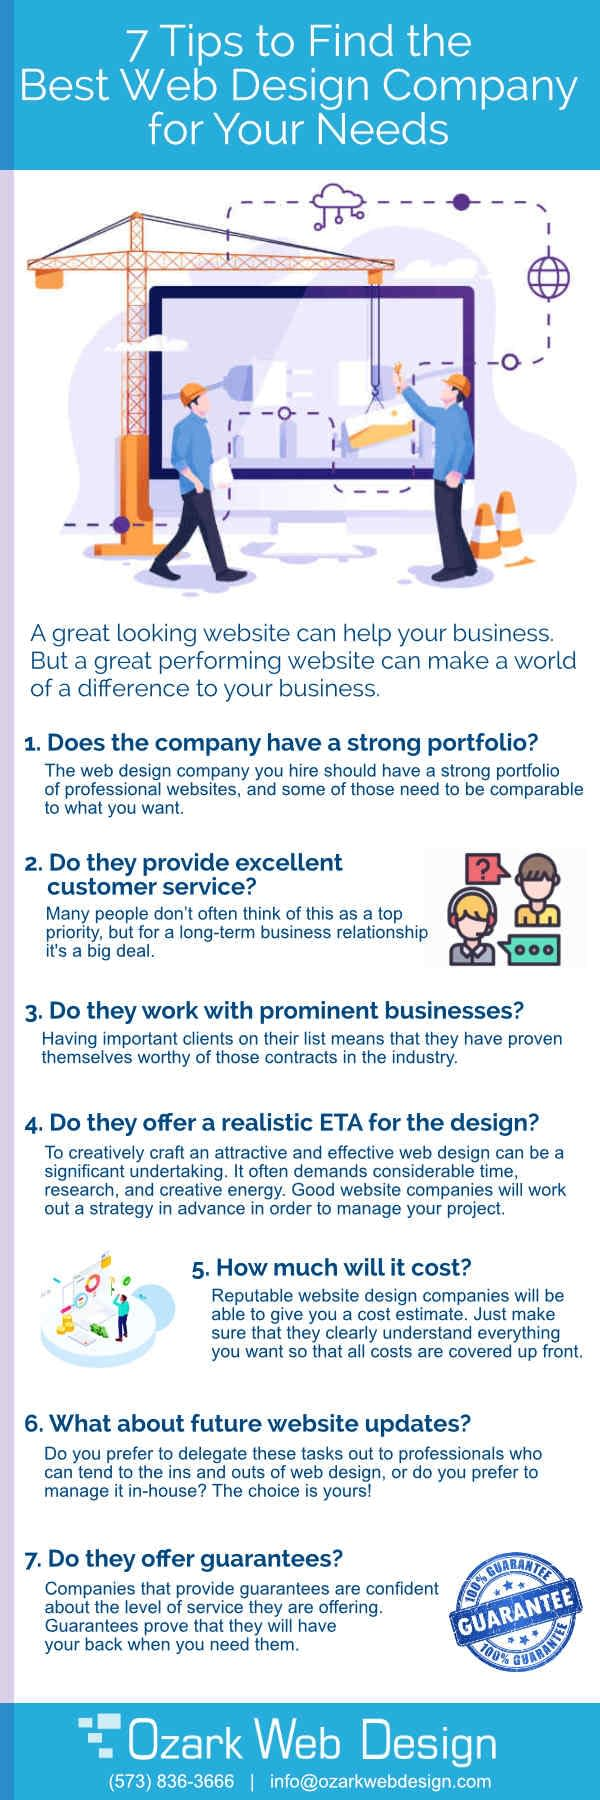 7 Tips To Find The Best Web Design Company For Your Needs